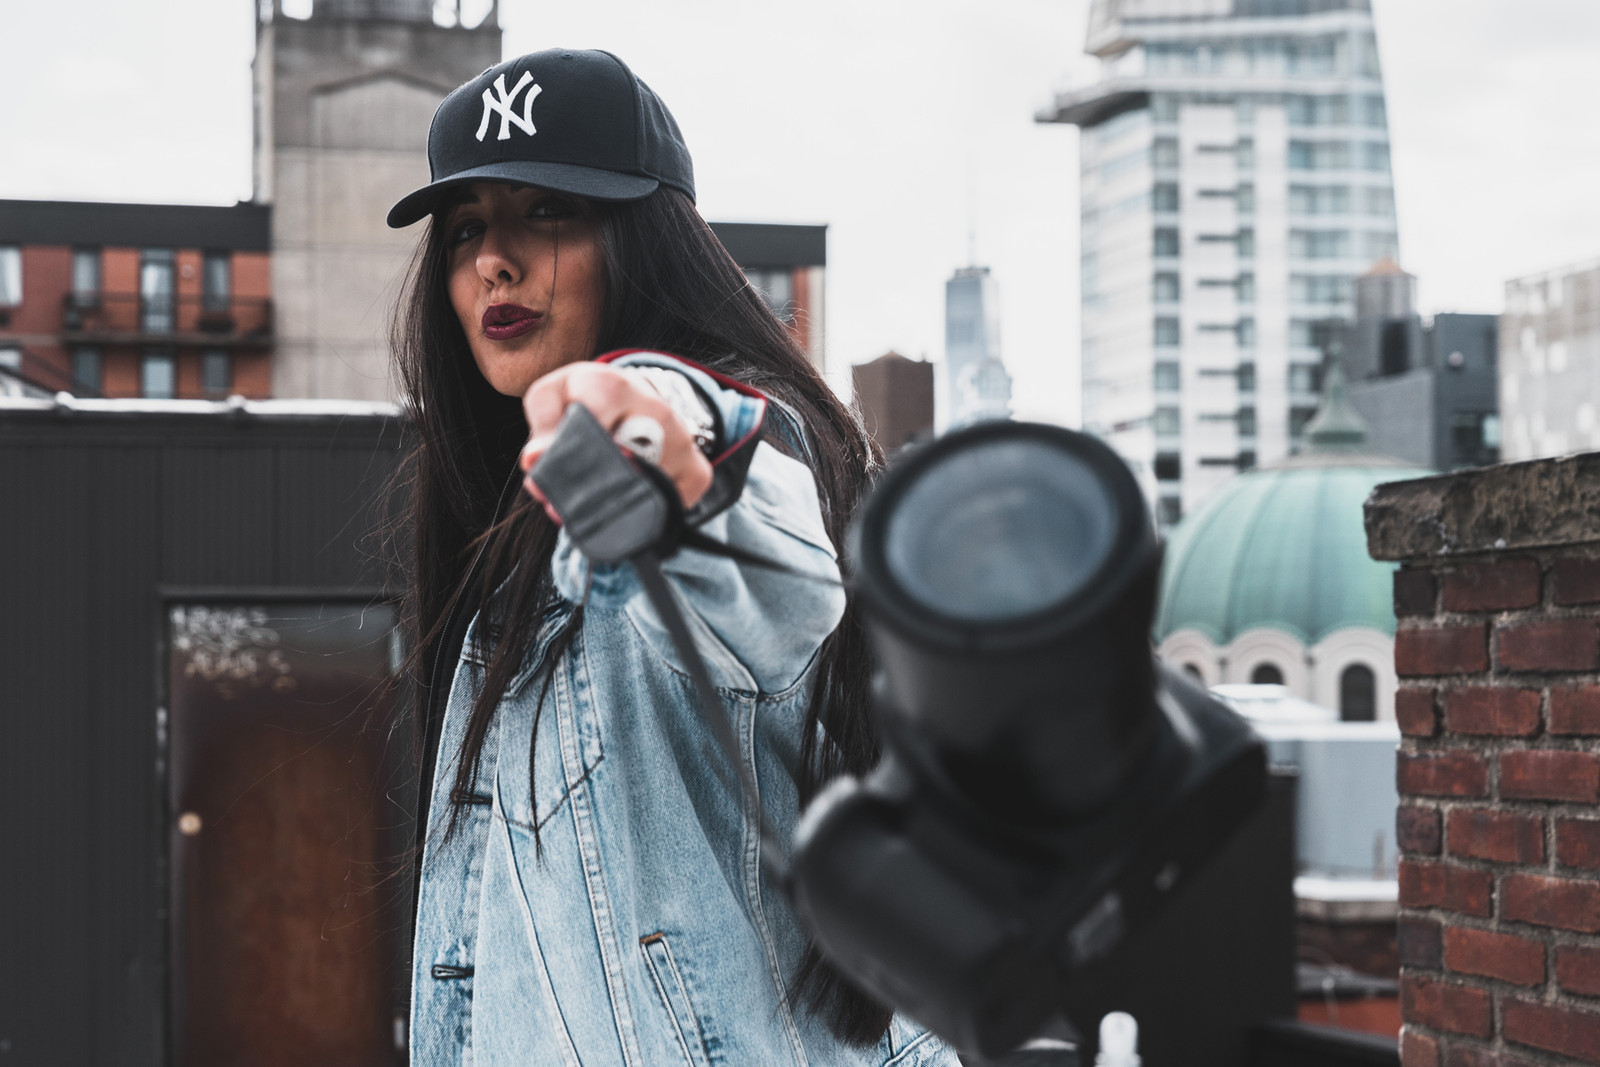 Natalie Amrossi Misshattan HIDDEN HYPEBEAST Aerial Photography Helicopter KITH Ronnie Fieg Canon Photos Instagram Scenic New York City Roof